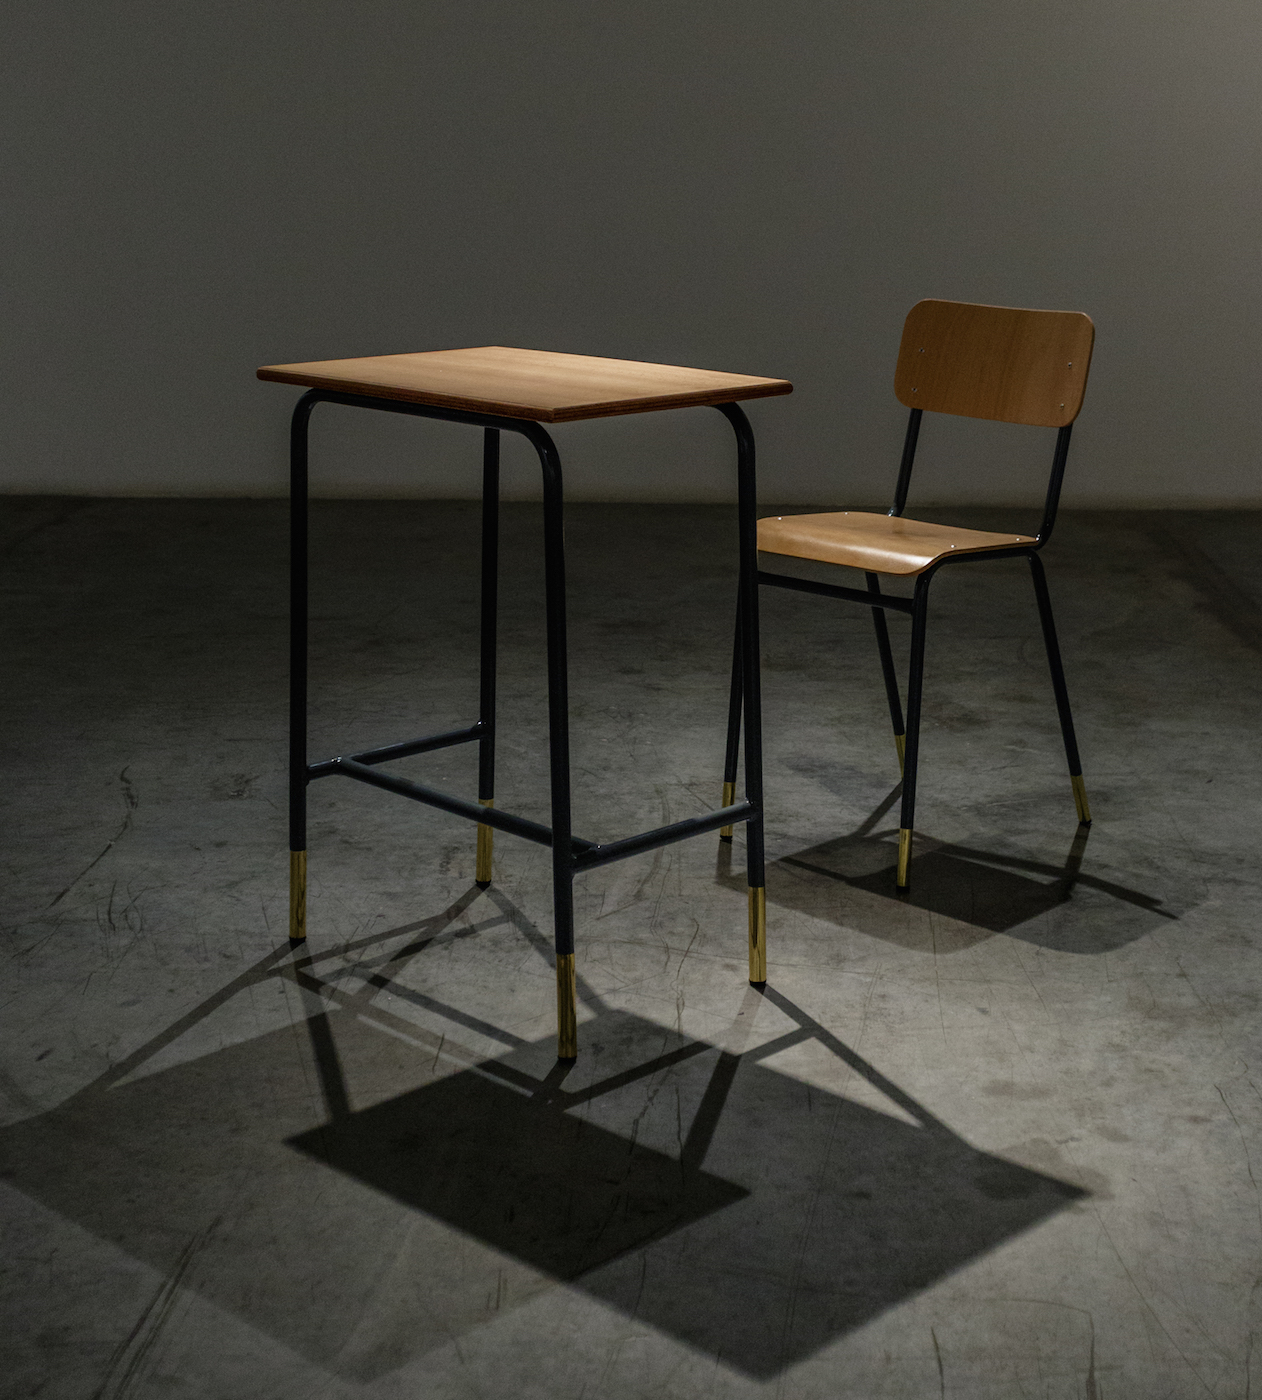 The Shape of Distance 2016 Pupil table and chair, welded brass Table: 77 x 40 x 55 cm, chair: 80 x 45 x 36 cm